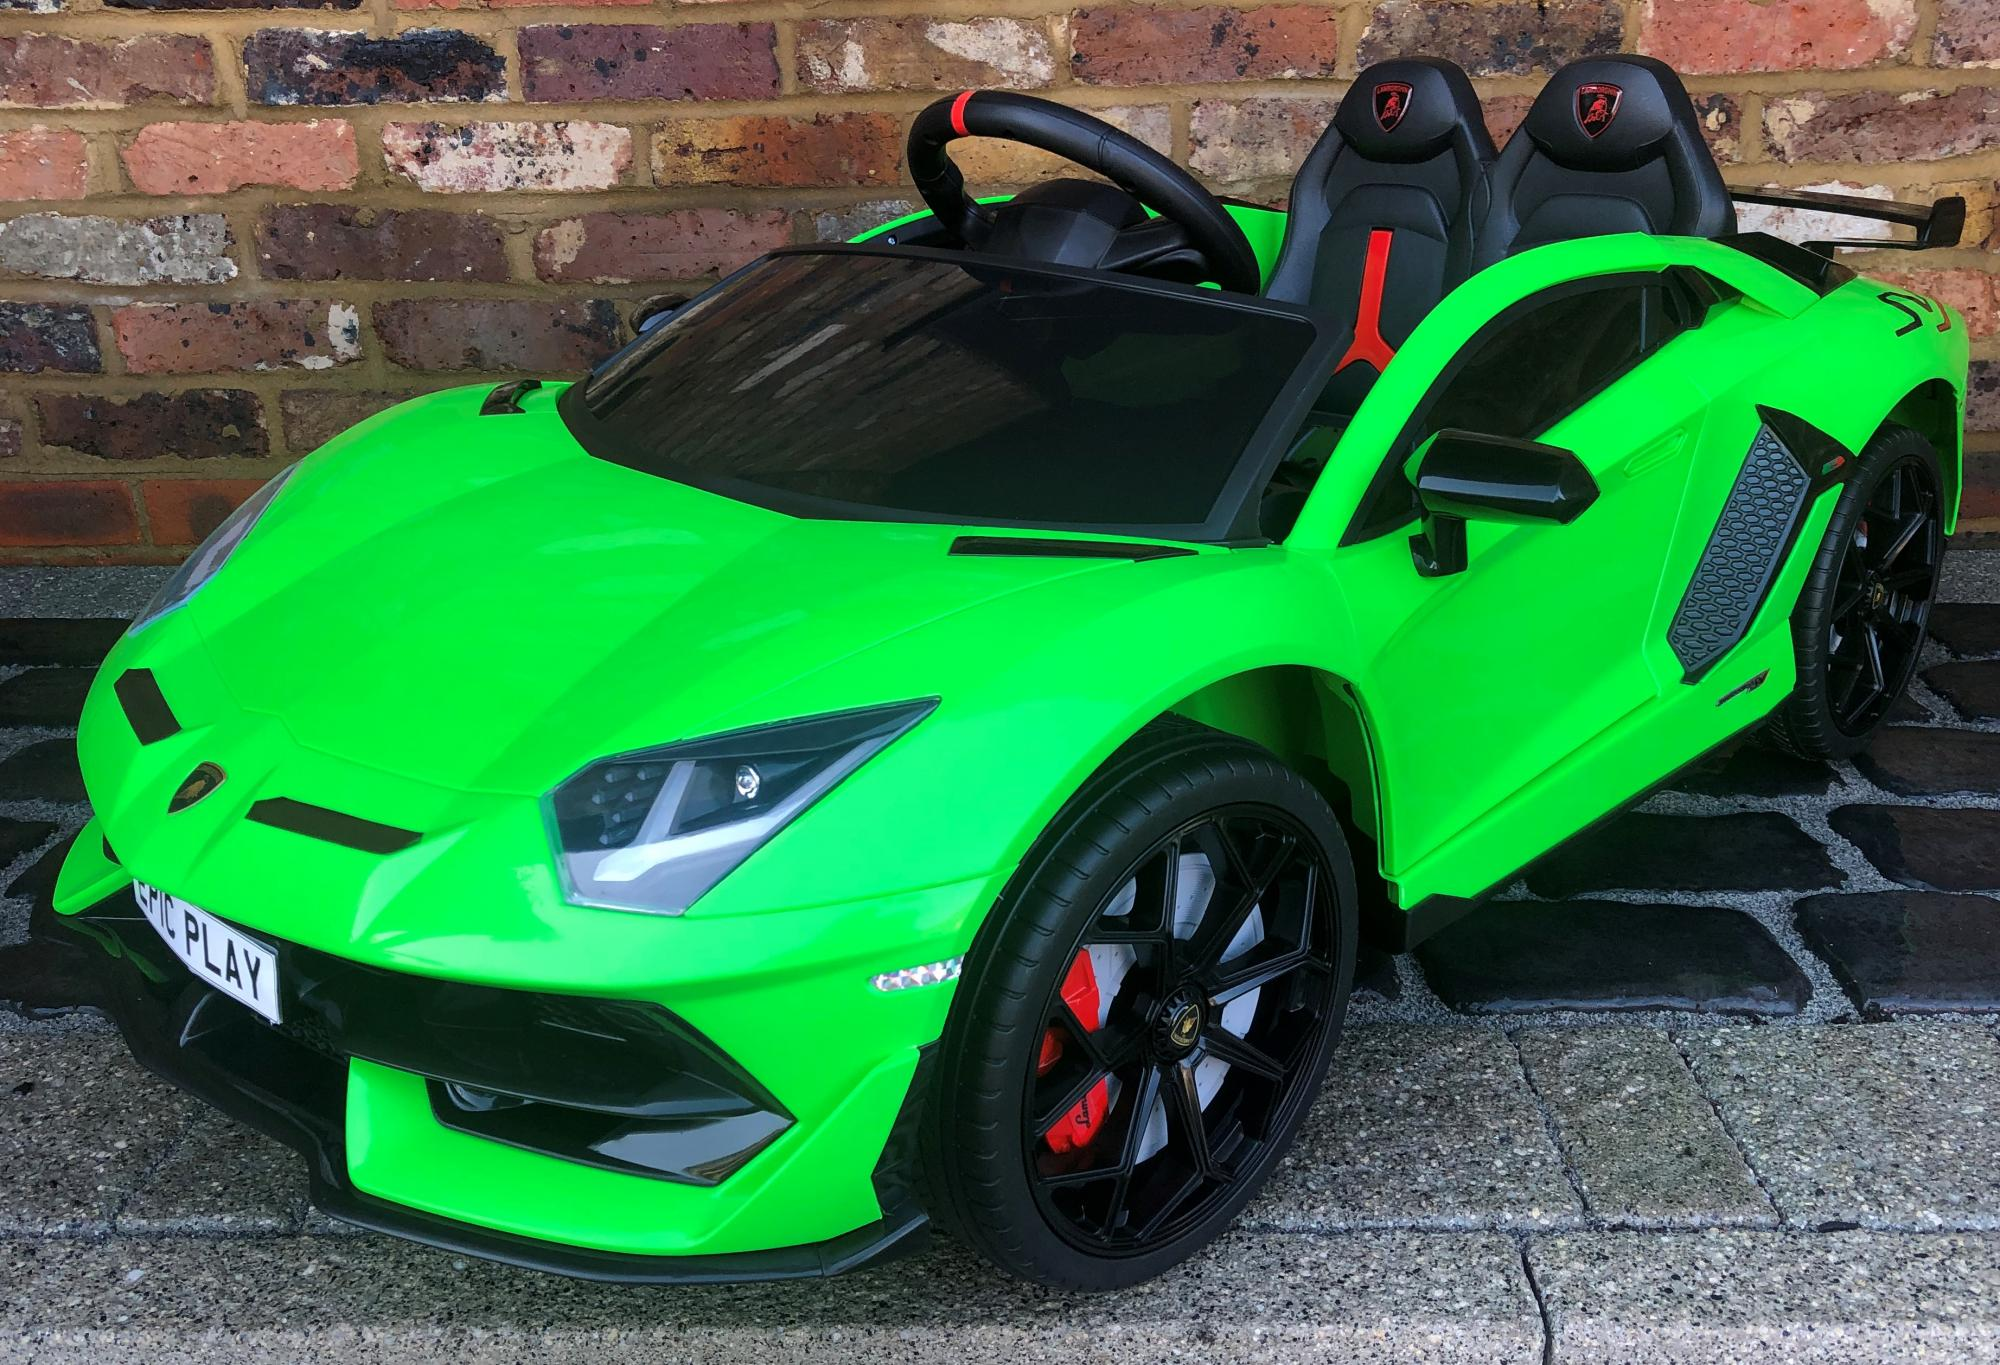 Kids Licensed Lamborghini Aventador SV Roadster 12V Battery Electric Ride on Car with Remote Control - Green